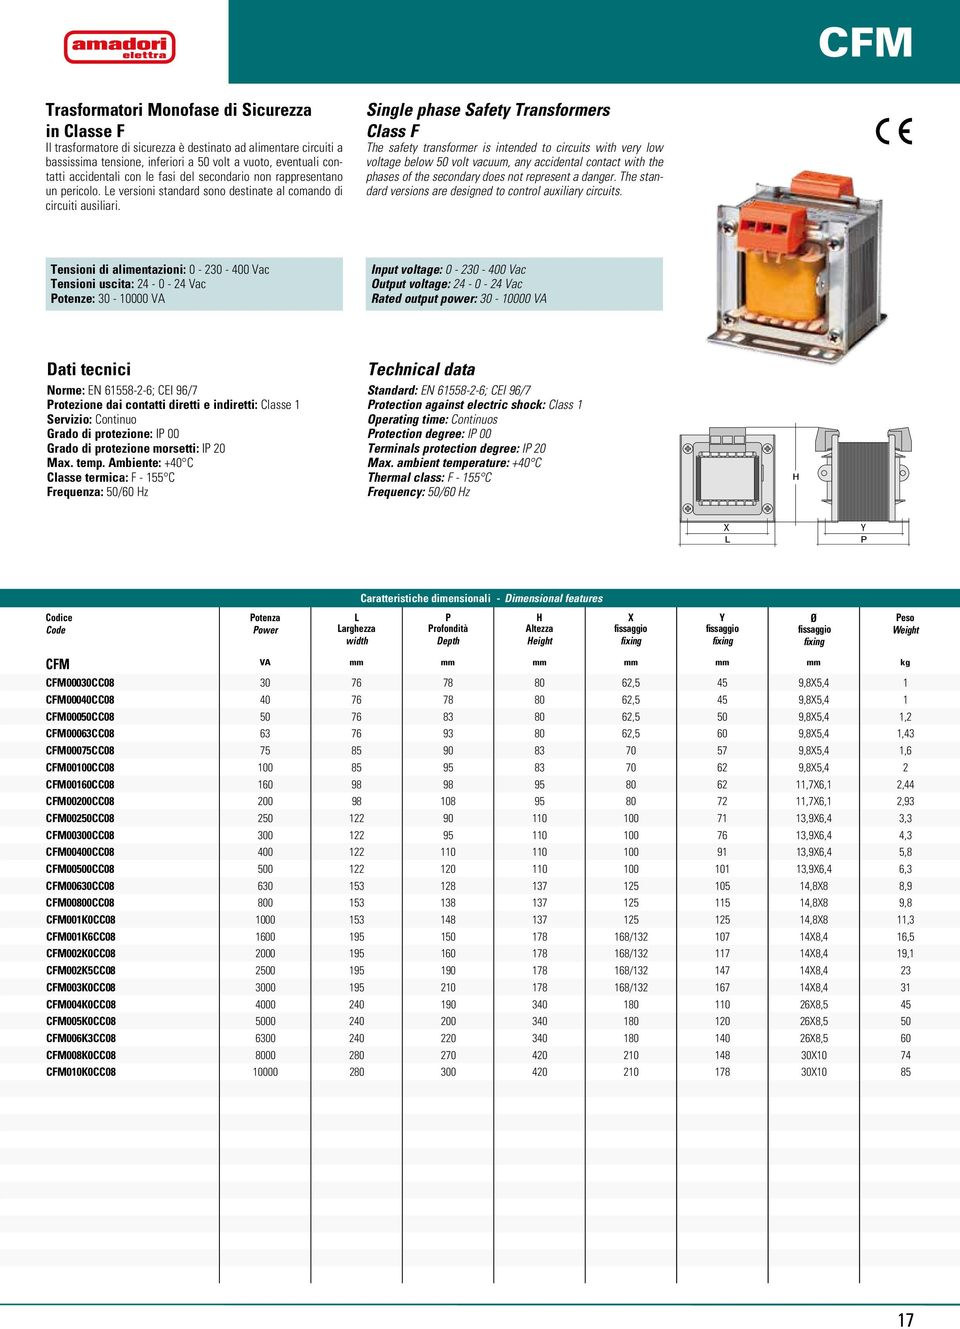 Single phase Safety Transformers Class F The safety transformer is intended to circuits with very low voltage below 50 volt vacuum, any accidental contact with the phases of the secondary does not